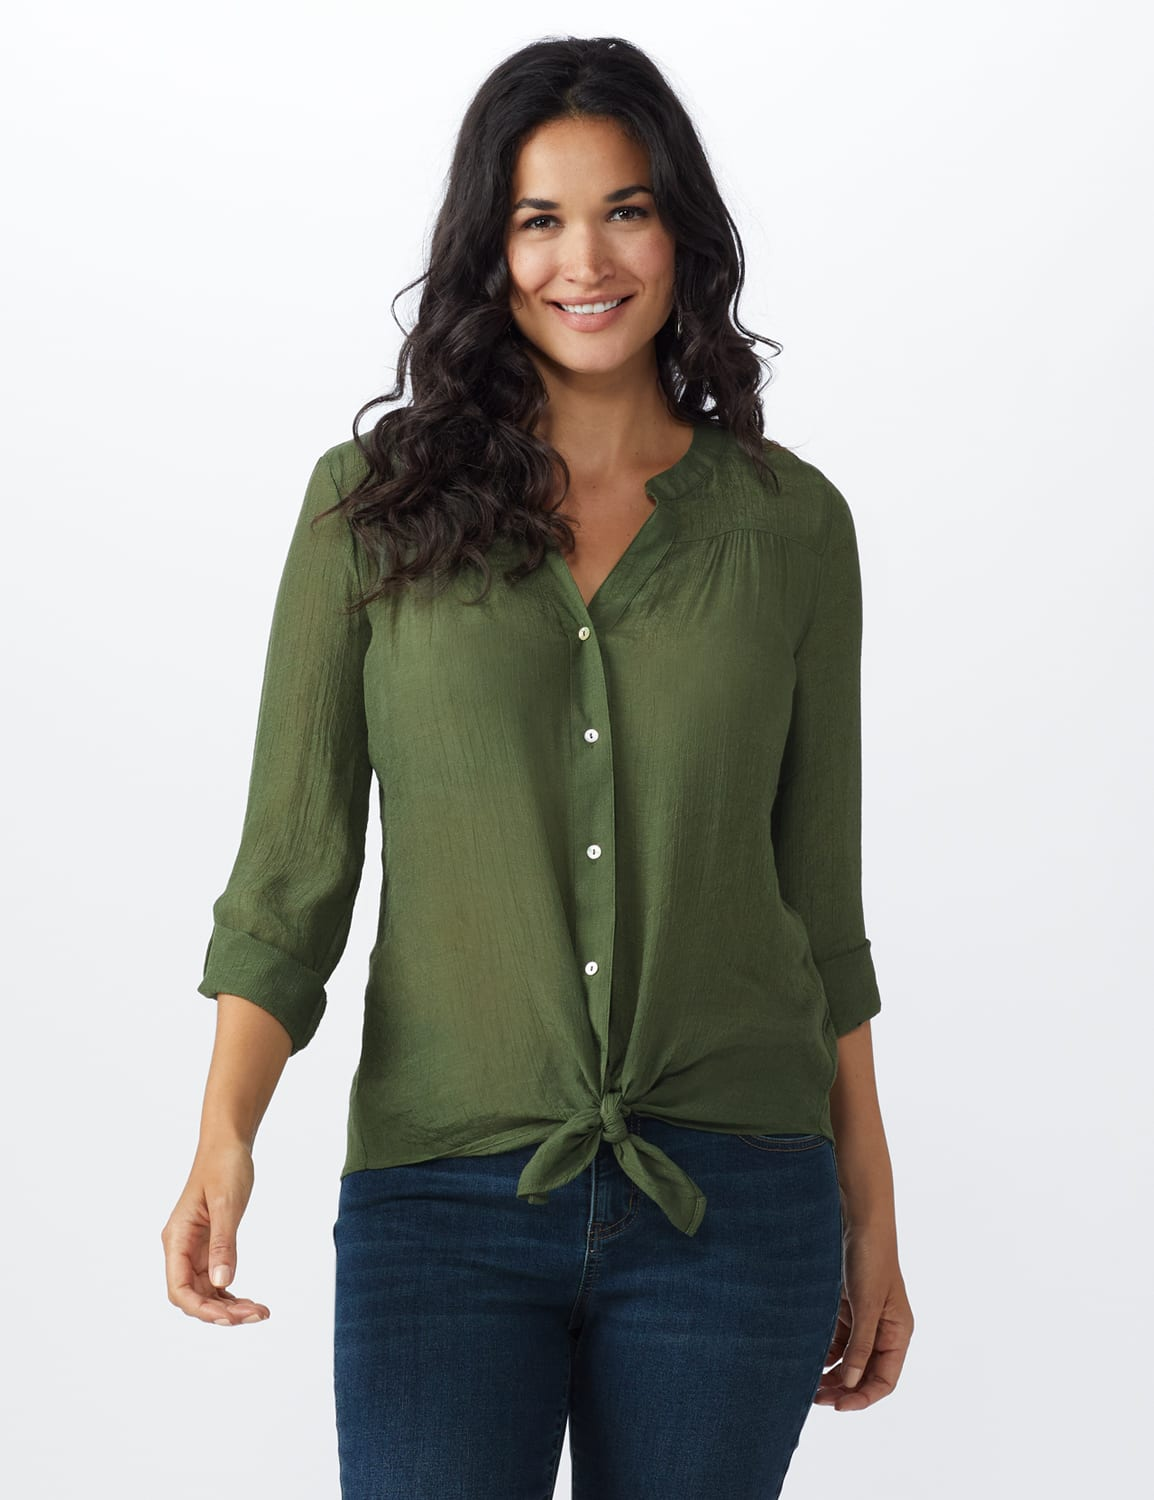 Textured Button Front Roll Tab Shirt - Misses - Army Olive - Front